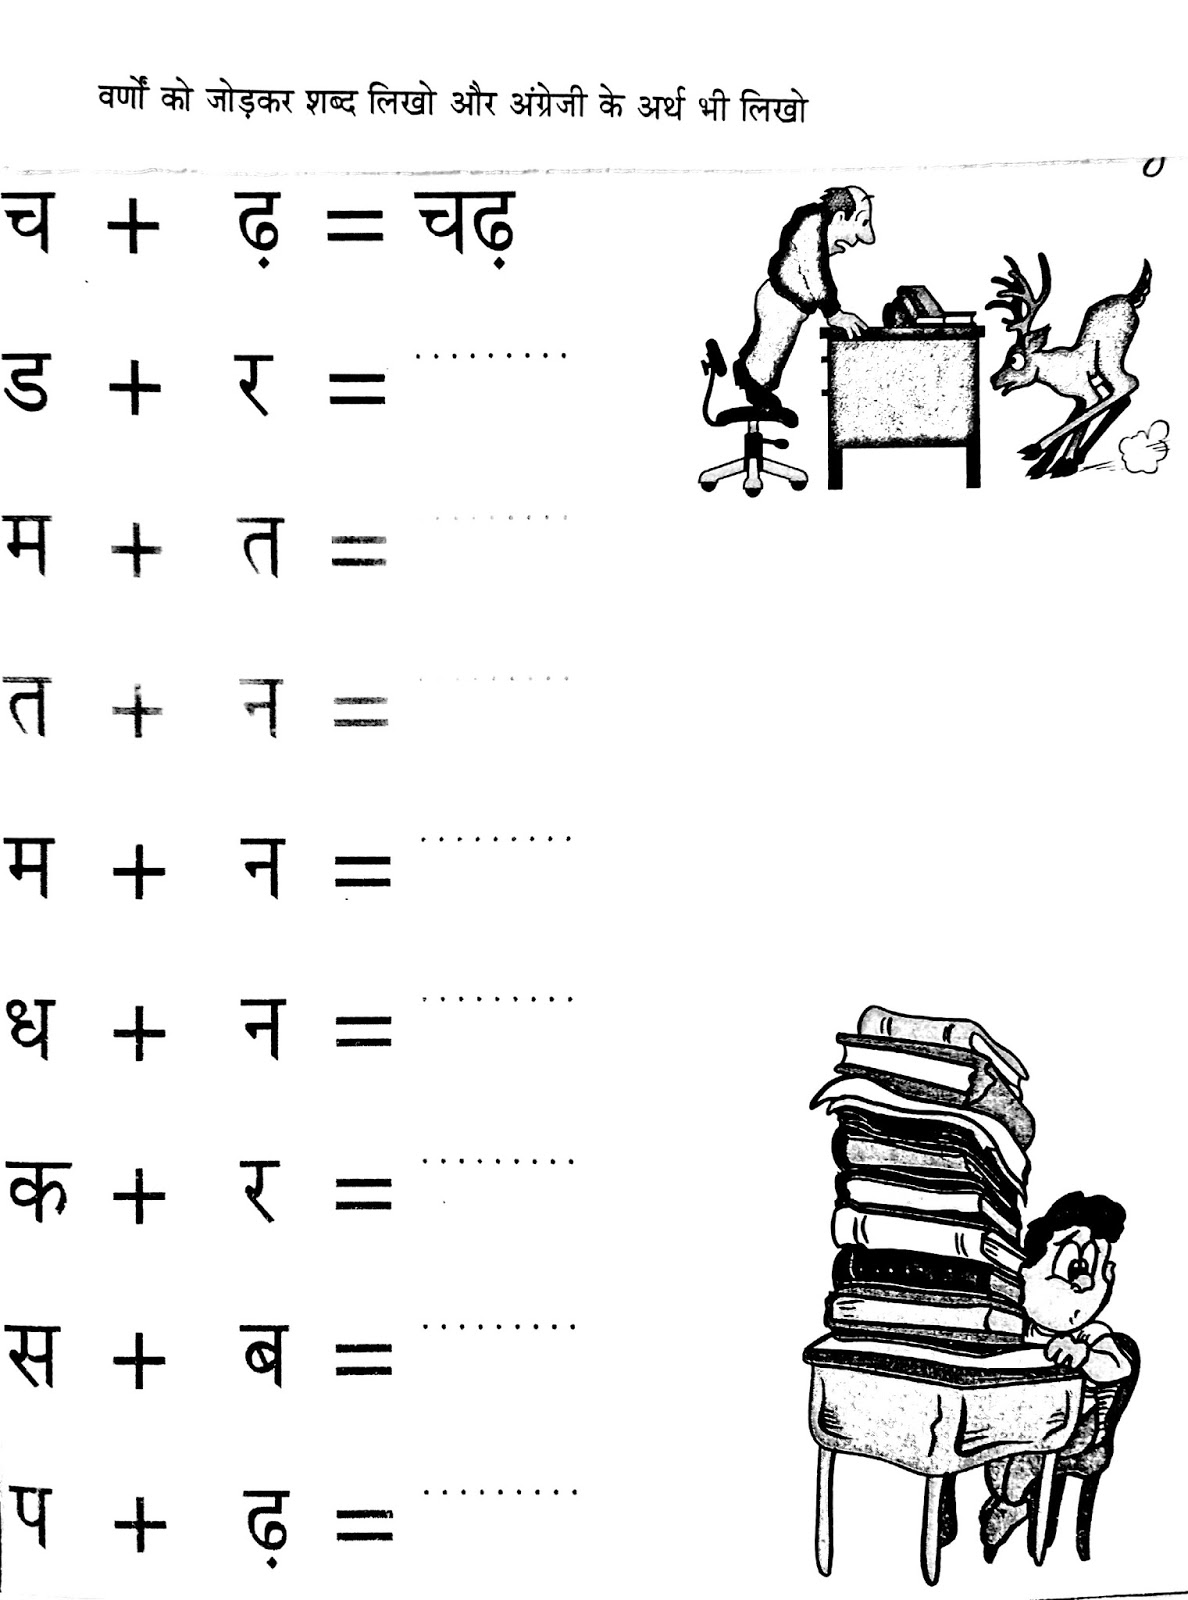 Printable Hindi Worksheets To Practice Aa Ki Matra Ideal For Grade 1 Students Or Those Learning